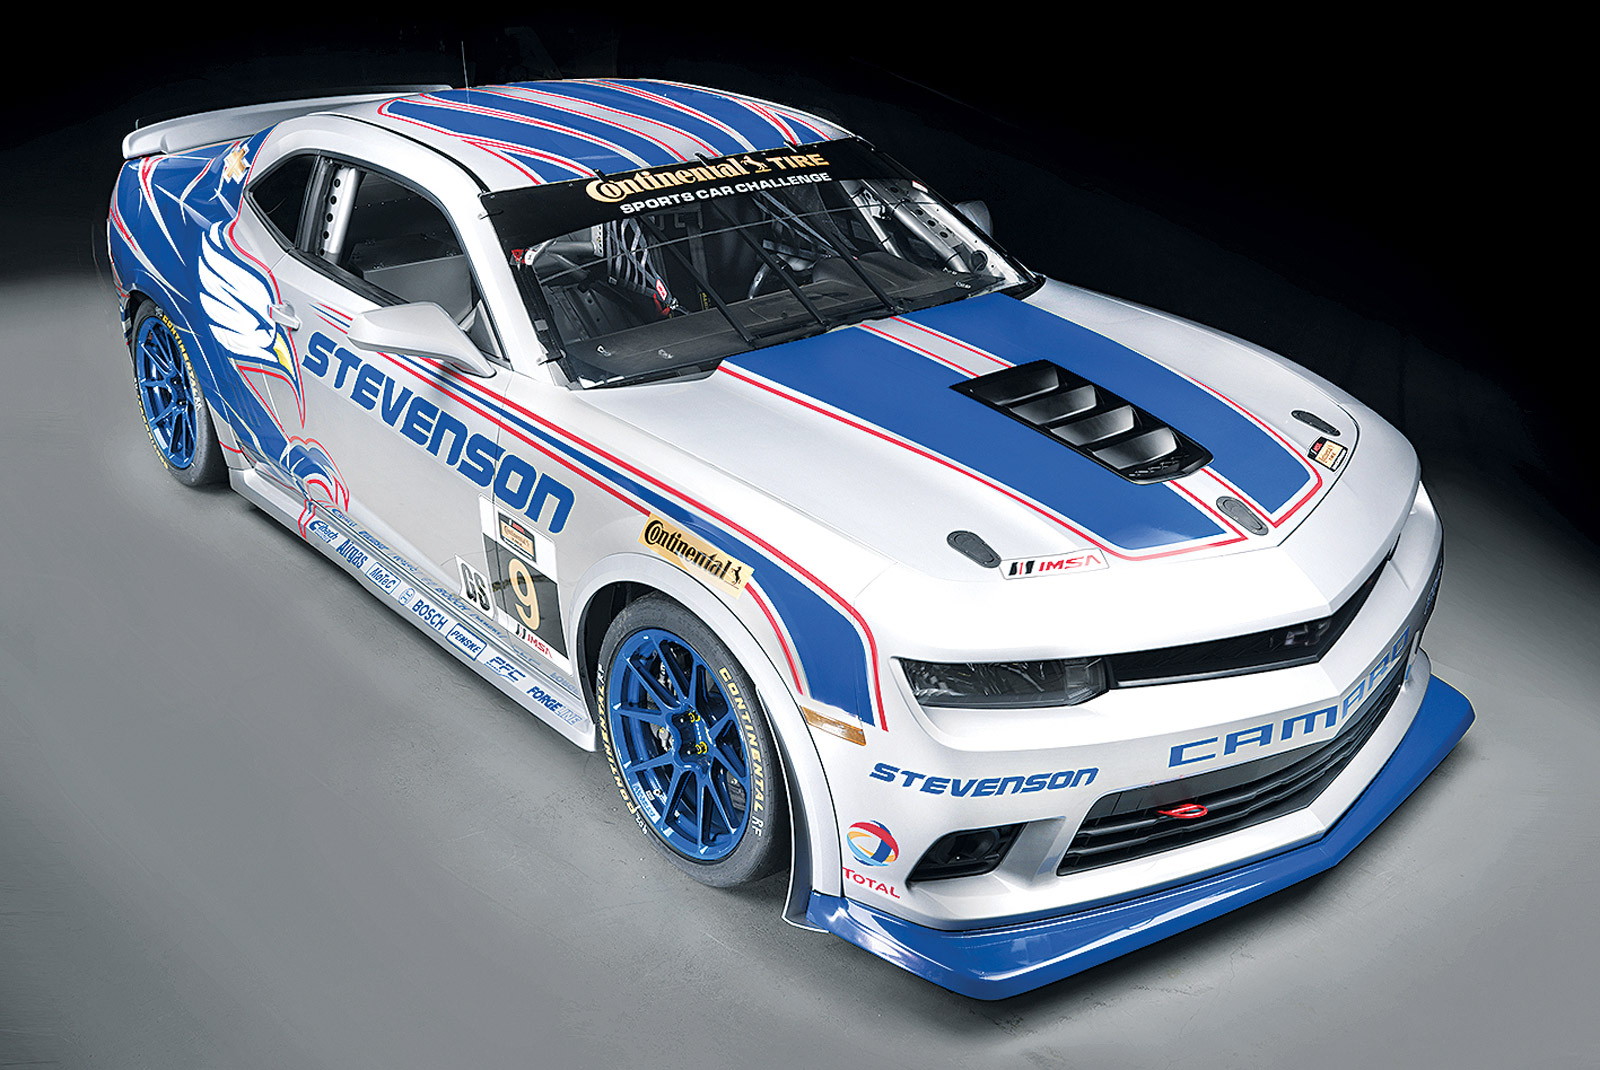 2014 Chevrolet Camaro Z 28 R Race Car Revealed